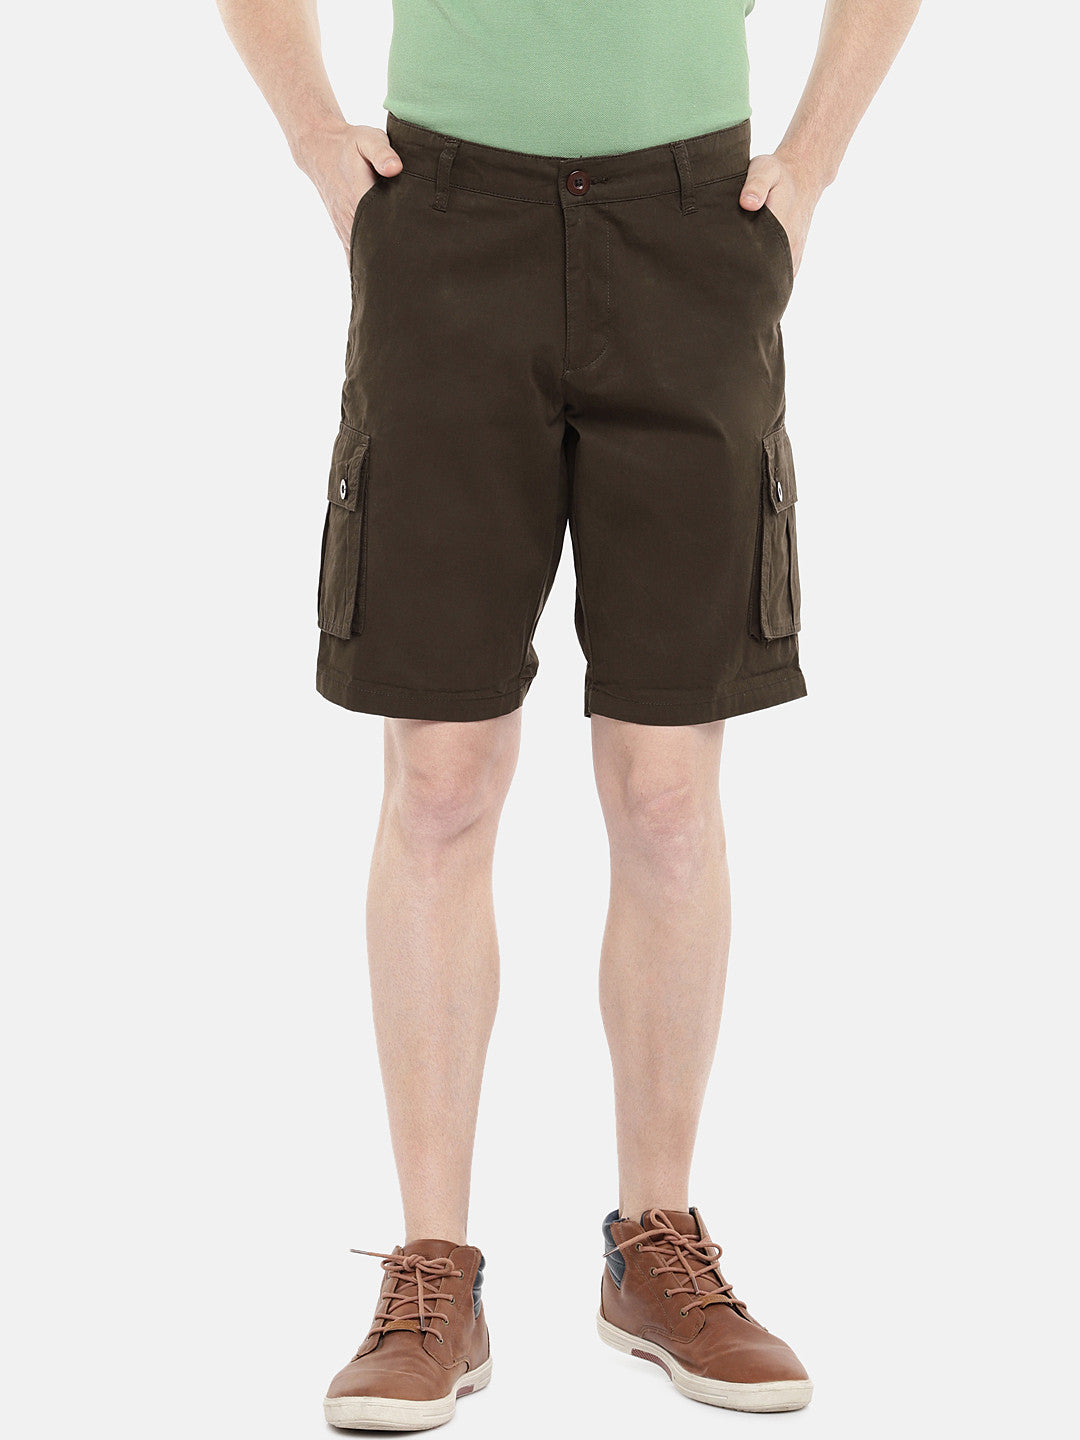 Olive Green Solid Regular Fit Regular Shorts-1